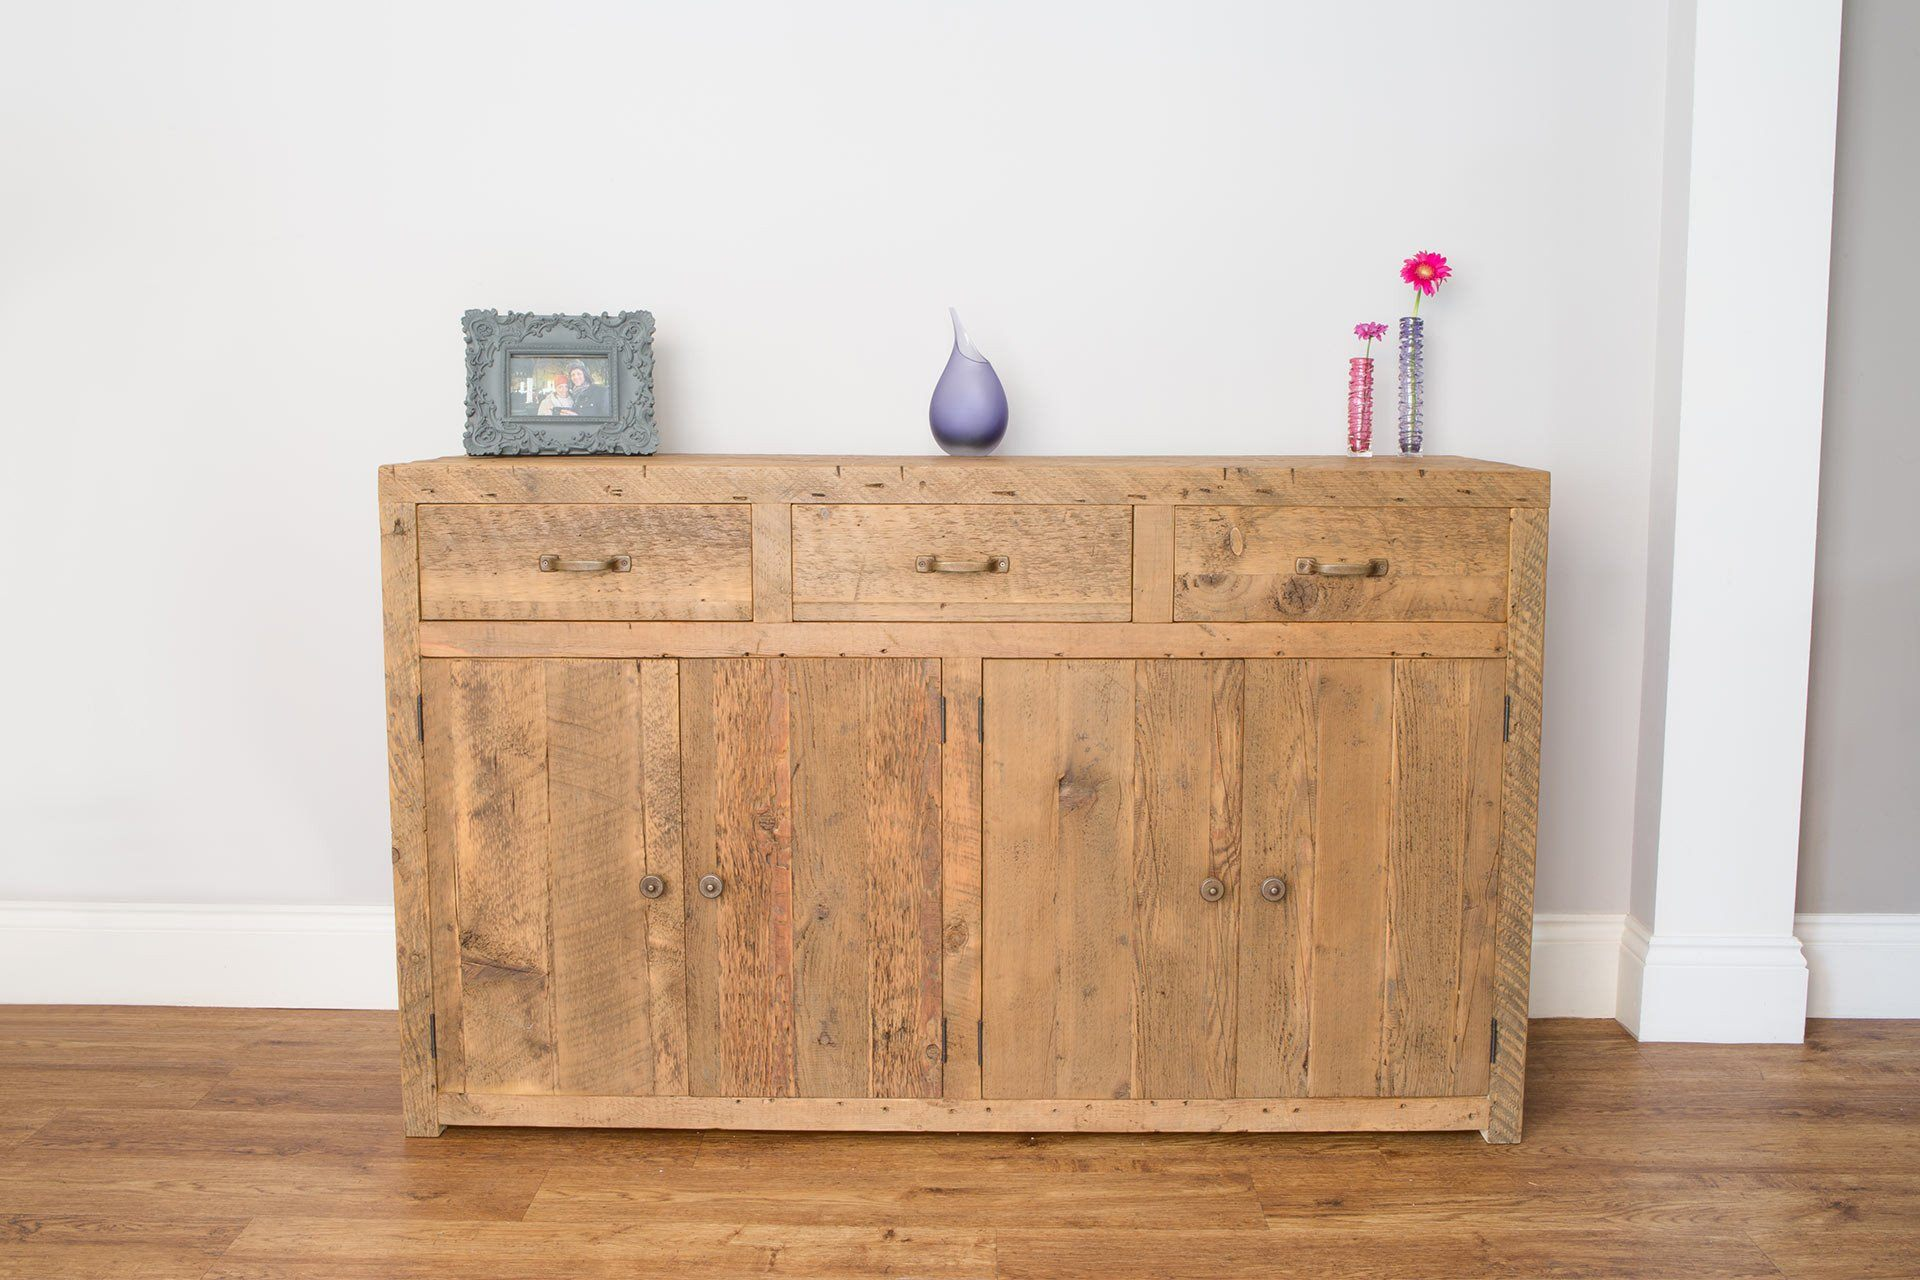 Warm 151.5cm Sideboard With Antique Handles & Knobs